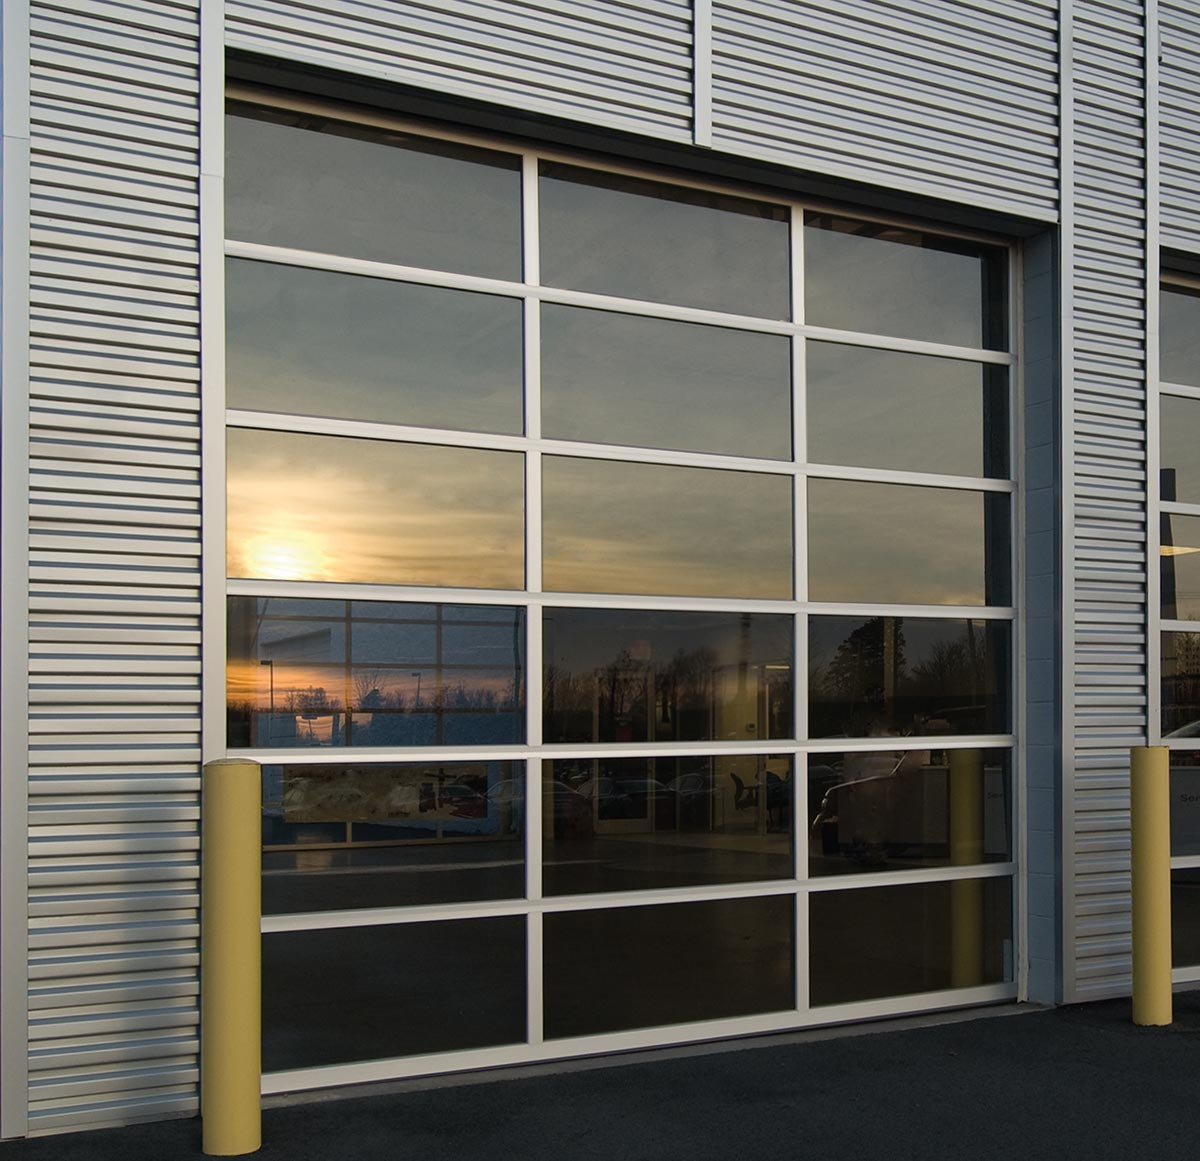 Commercial Roll Up Amp Overhead Garage Doors In Lewisville